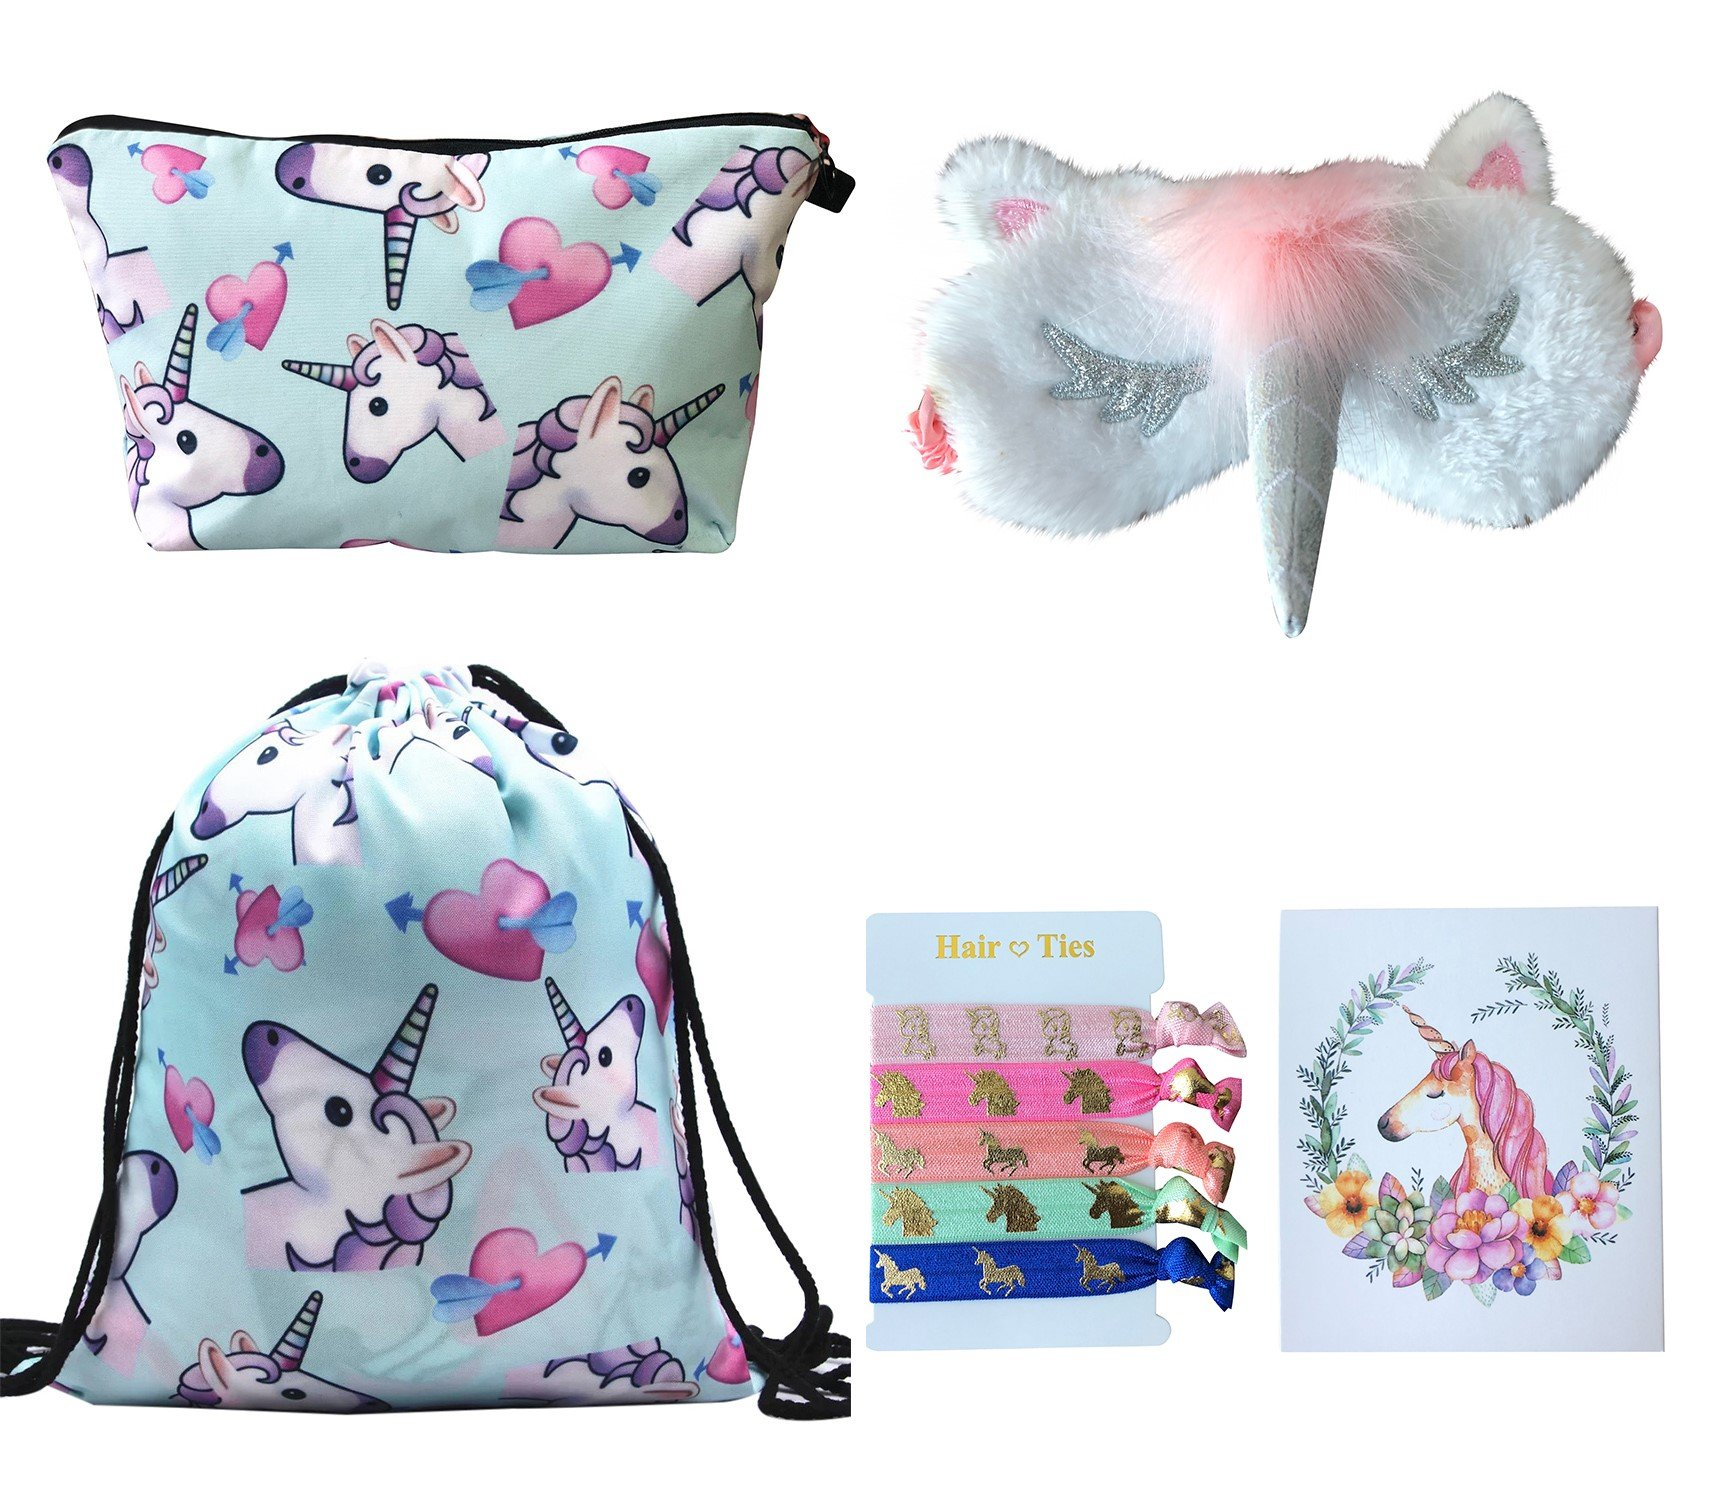 Unicorn Gifts for Girls 5 Pack - Unicorn Drawstring Backpack/Makeup Bag/Eye Mask/Hair Ties/Card (5 Set Blue)